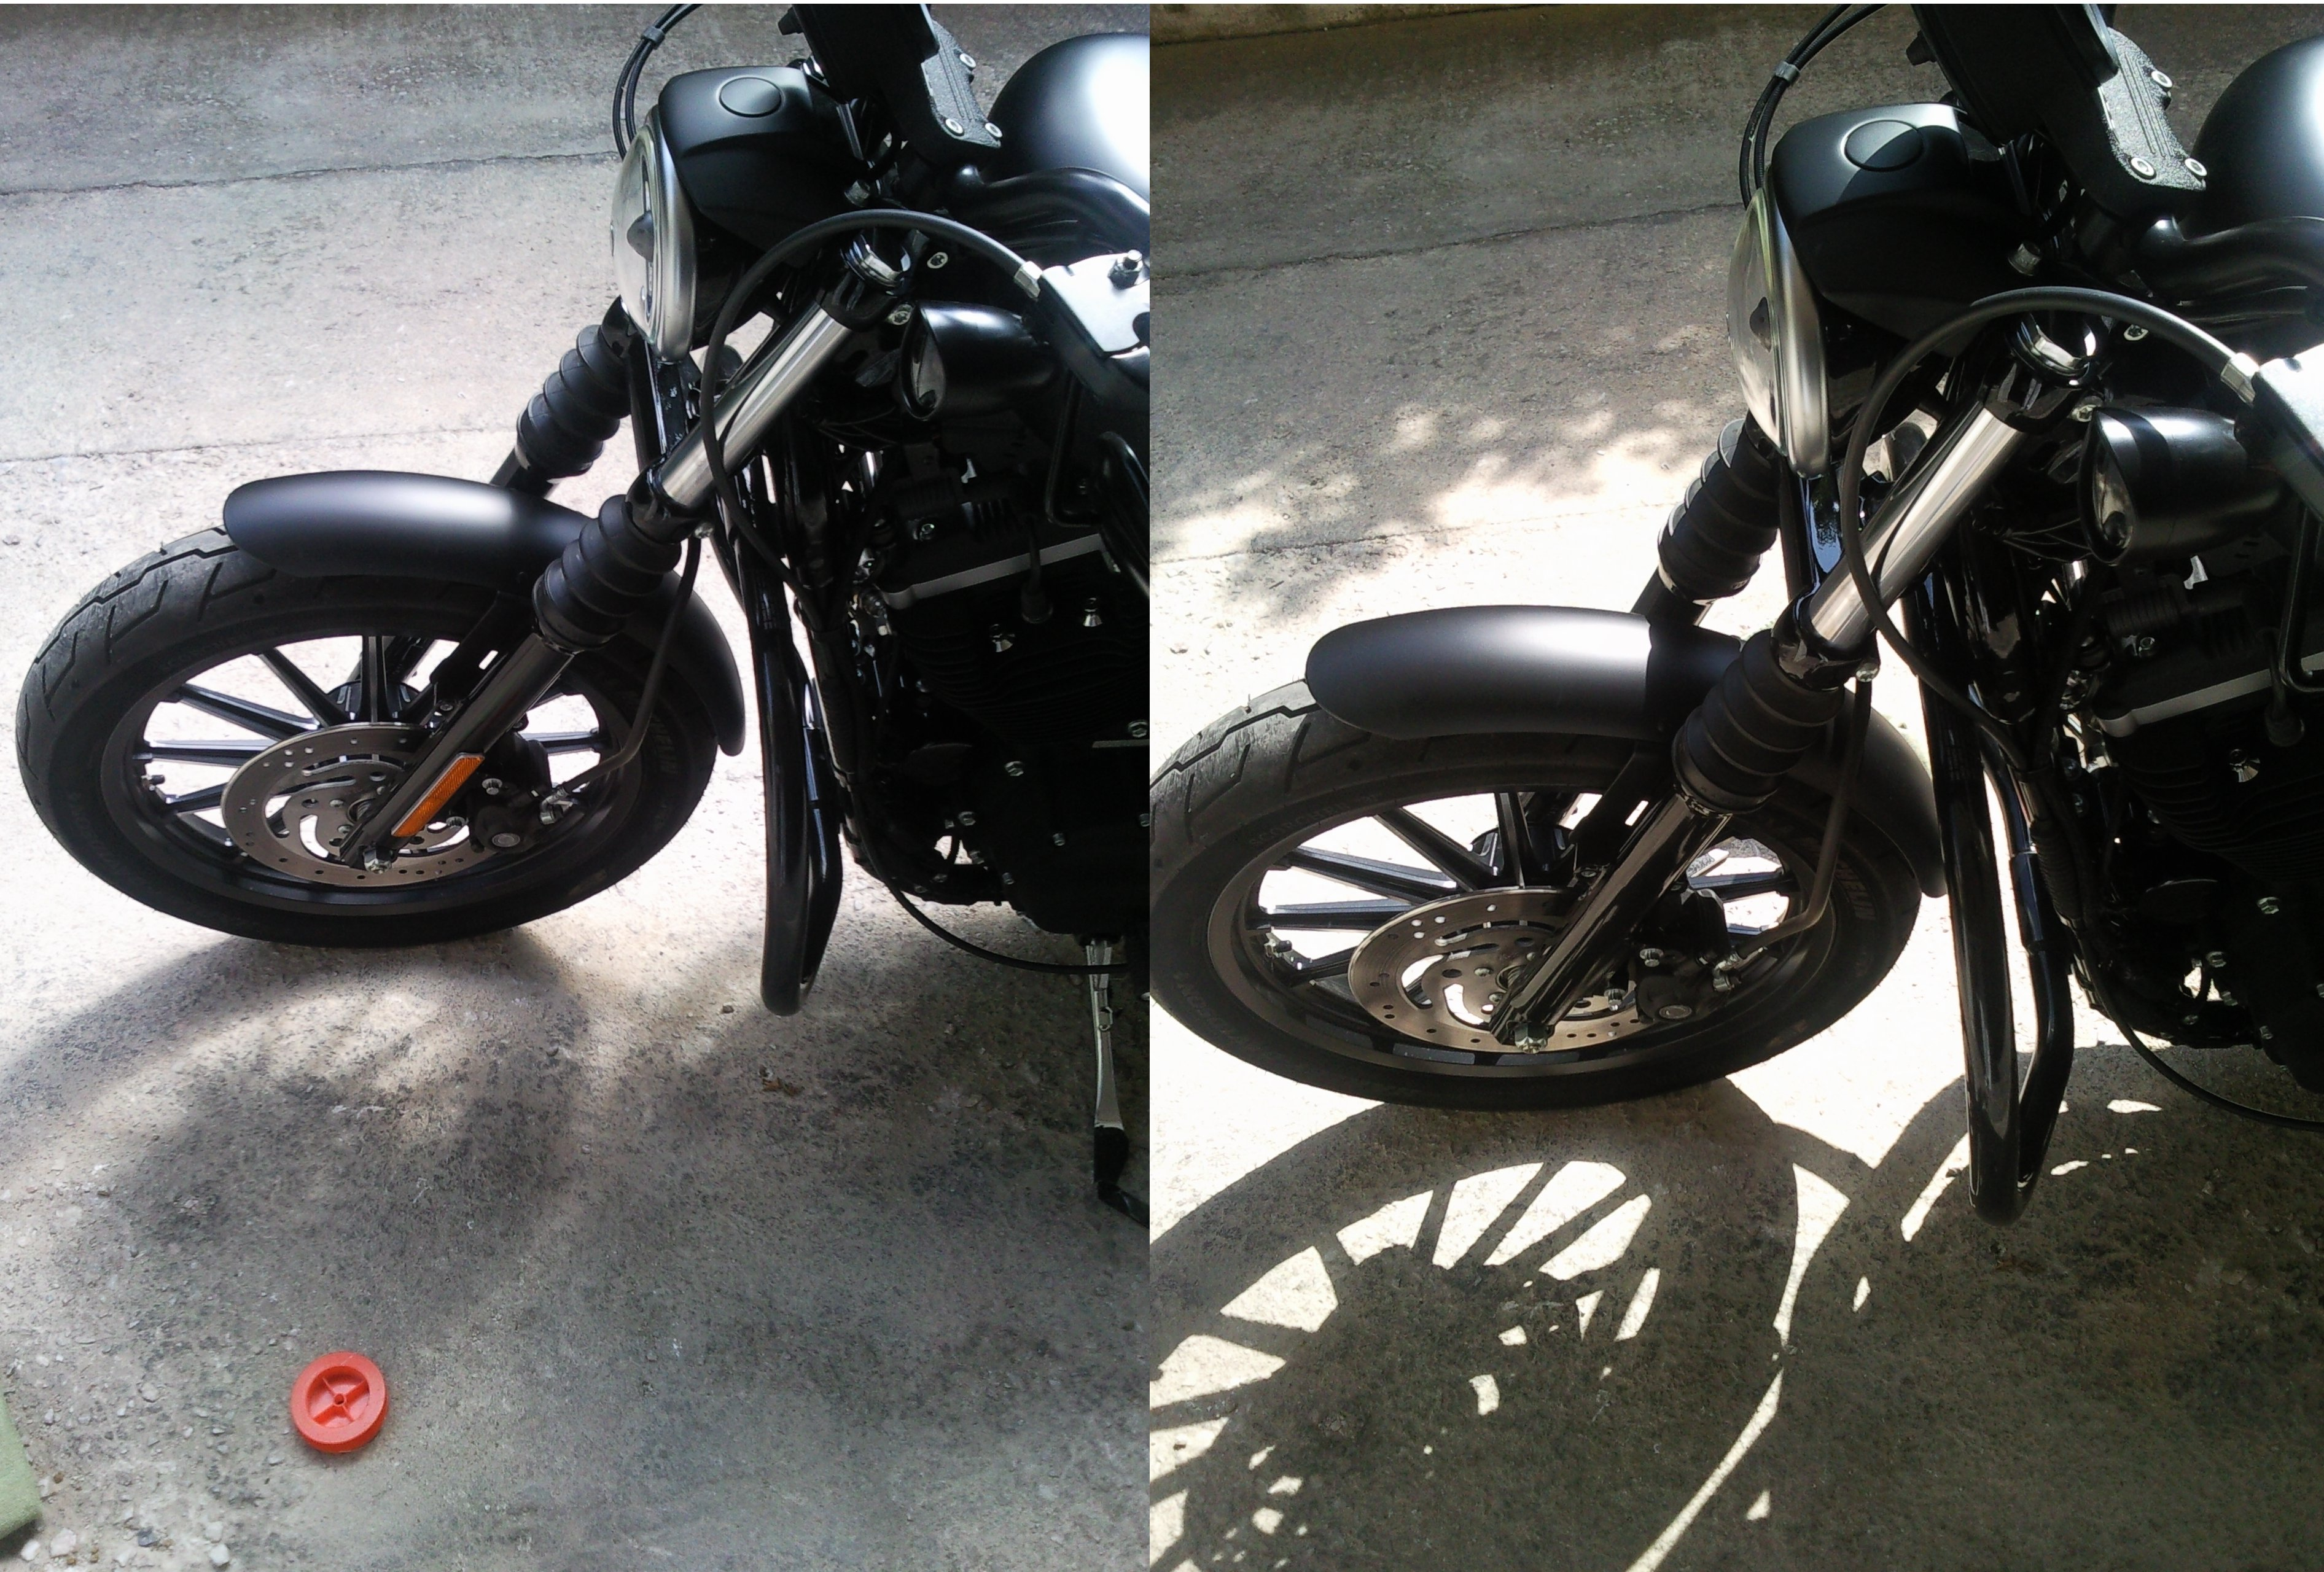 How-to: Remove Front Forks Reflectors of a Harley-Davidson